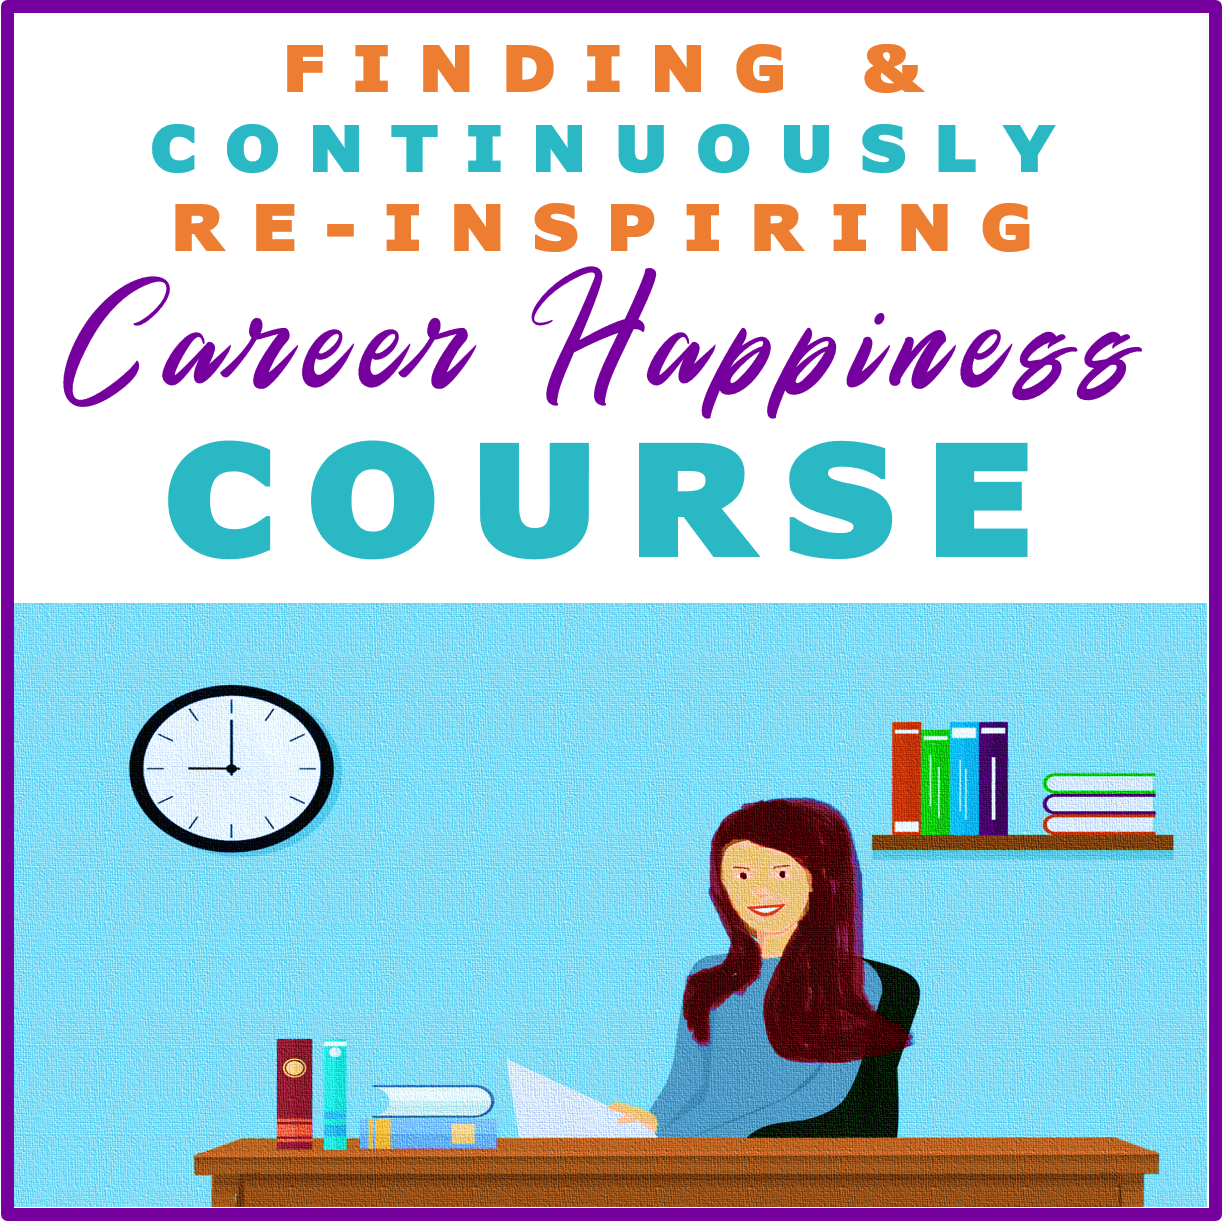 Career Happiness Course